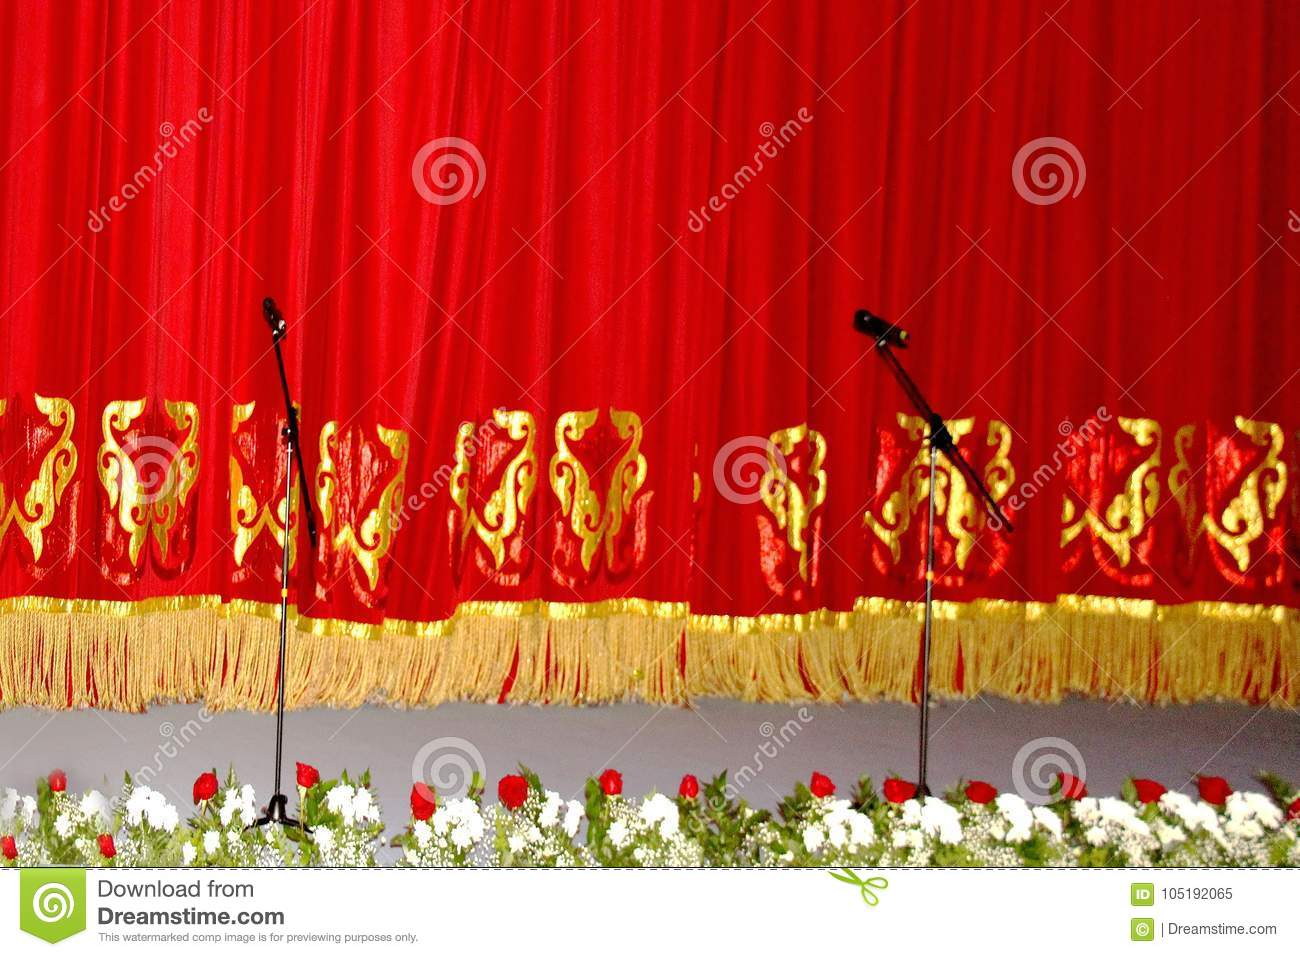 Theatrical red velvet curtain with gold pattern, and the microphones